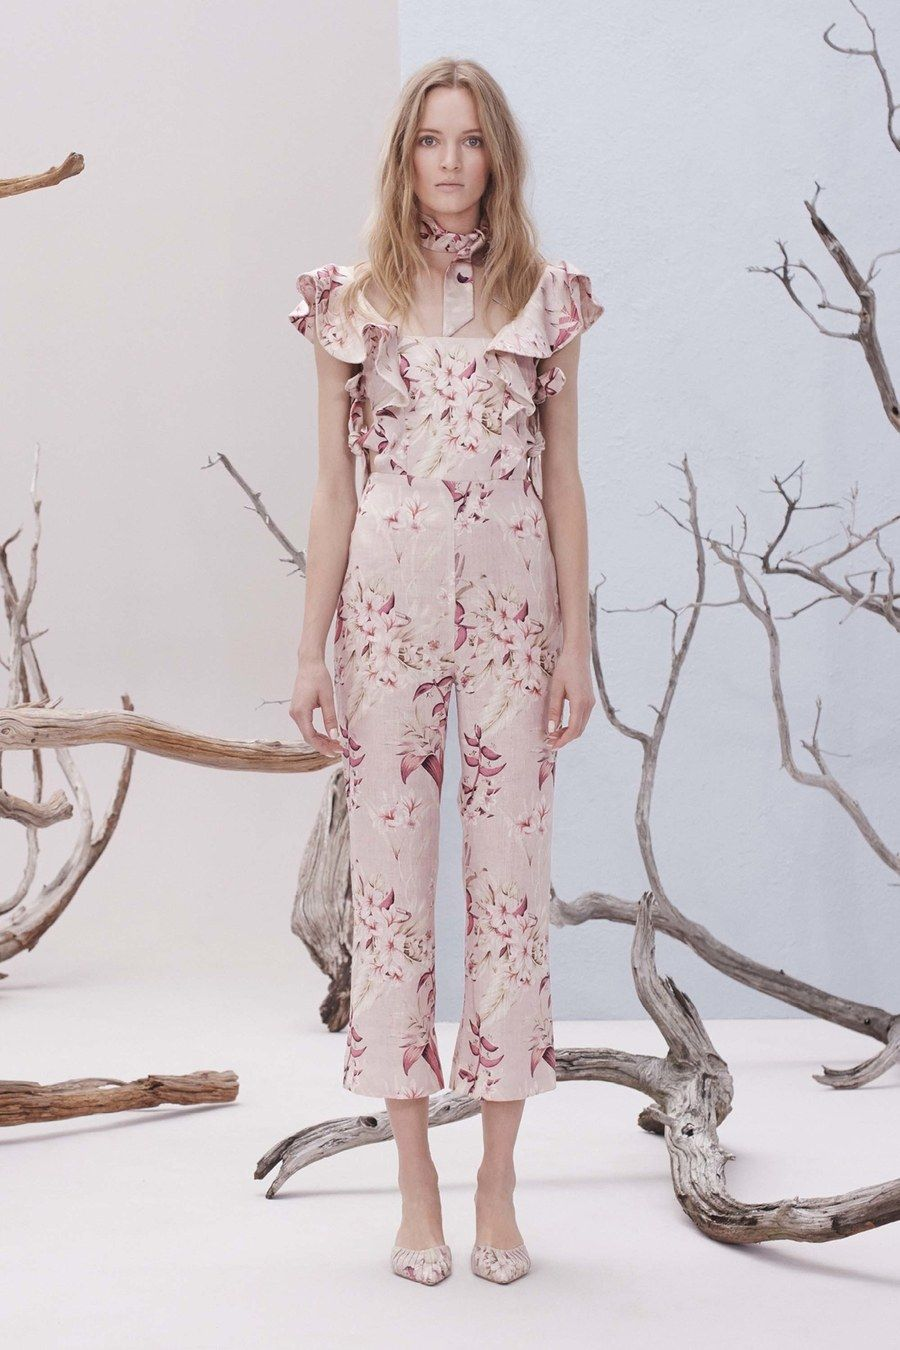 Zimmermann resort fashion show resorts models and collection